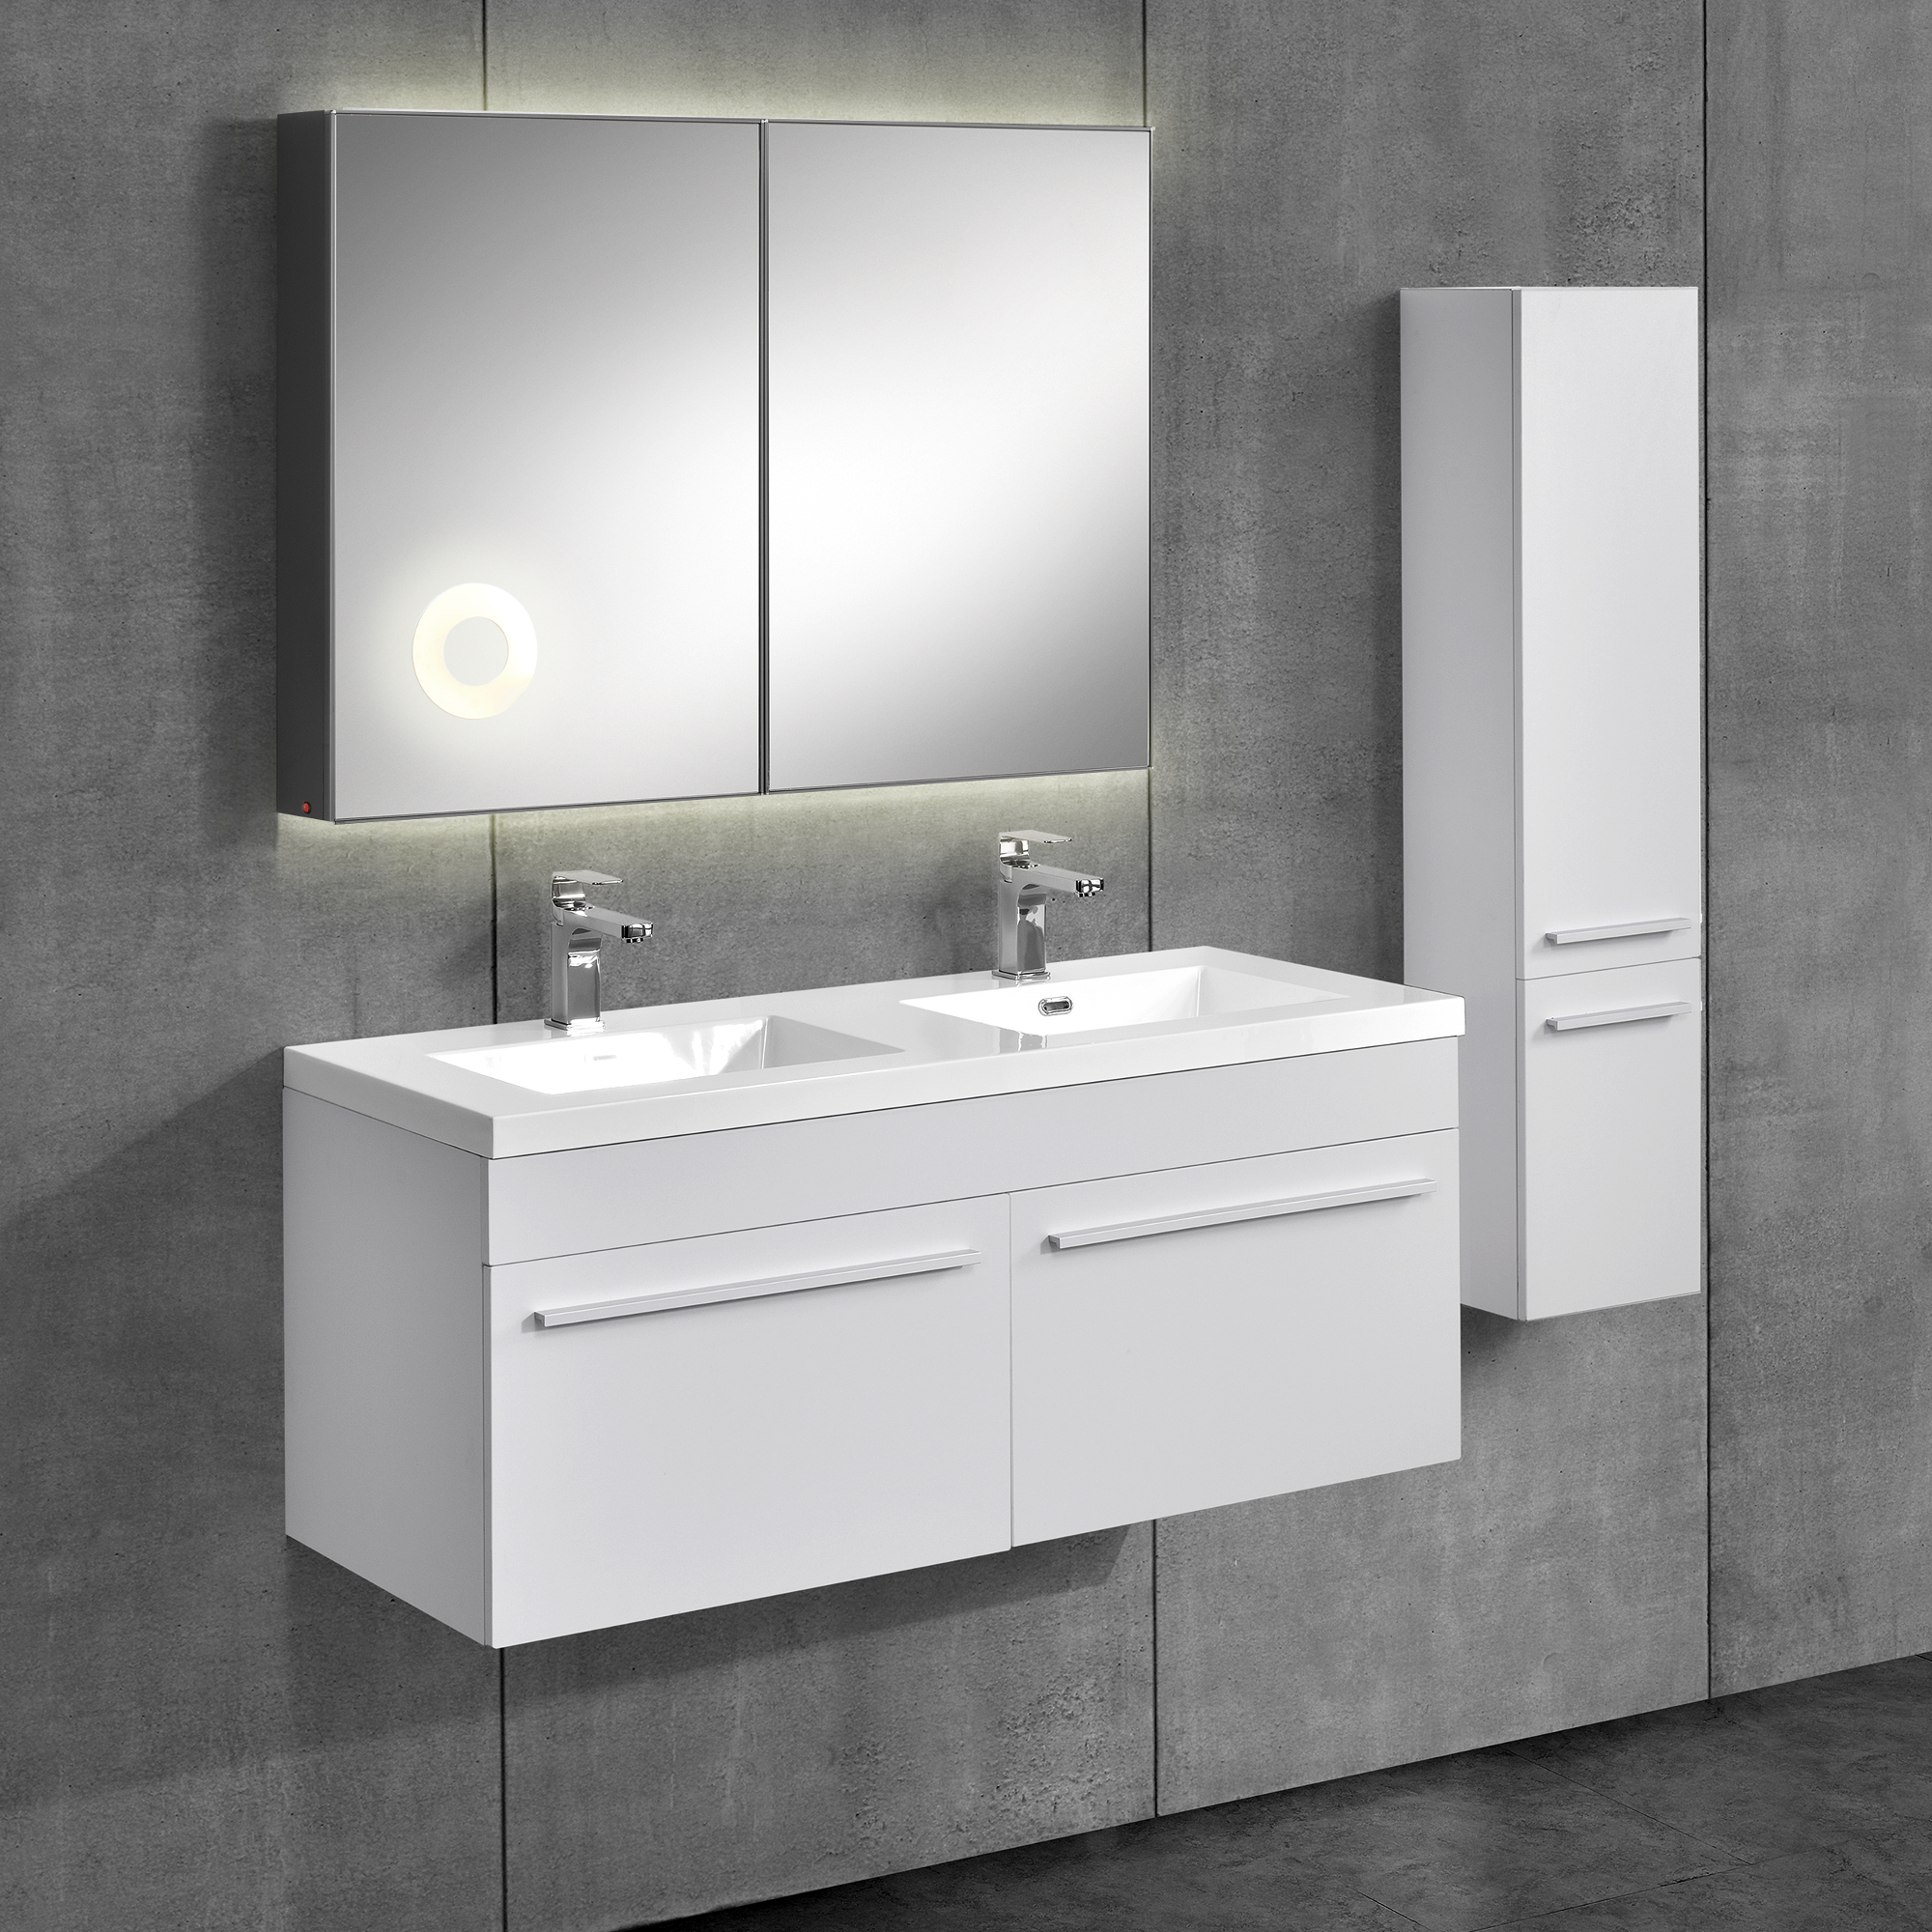 neuhaus armoire de salle bain meuble dessous lavabo blanc ebay. Black Bedroom Furniture Sets. Home Design Ideas